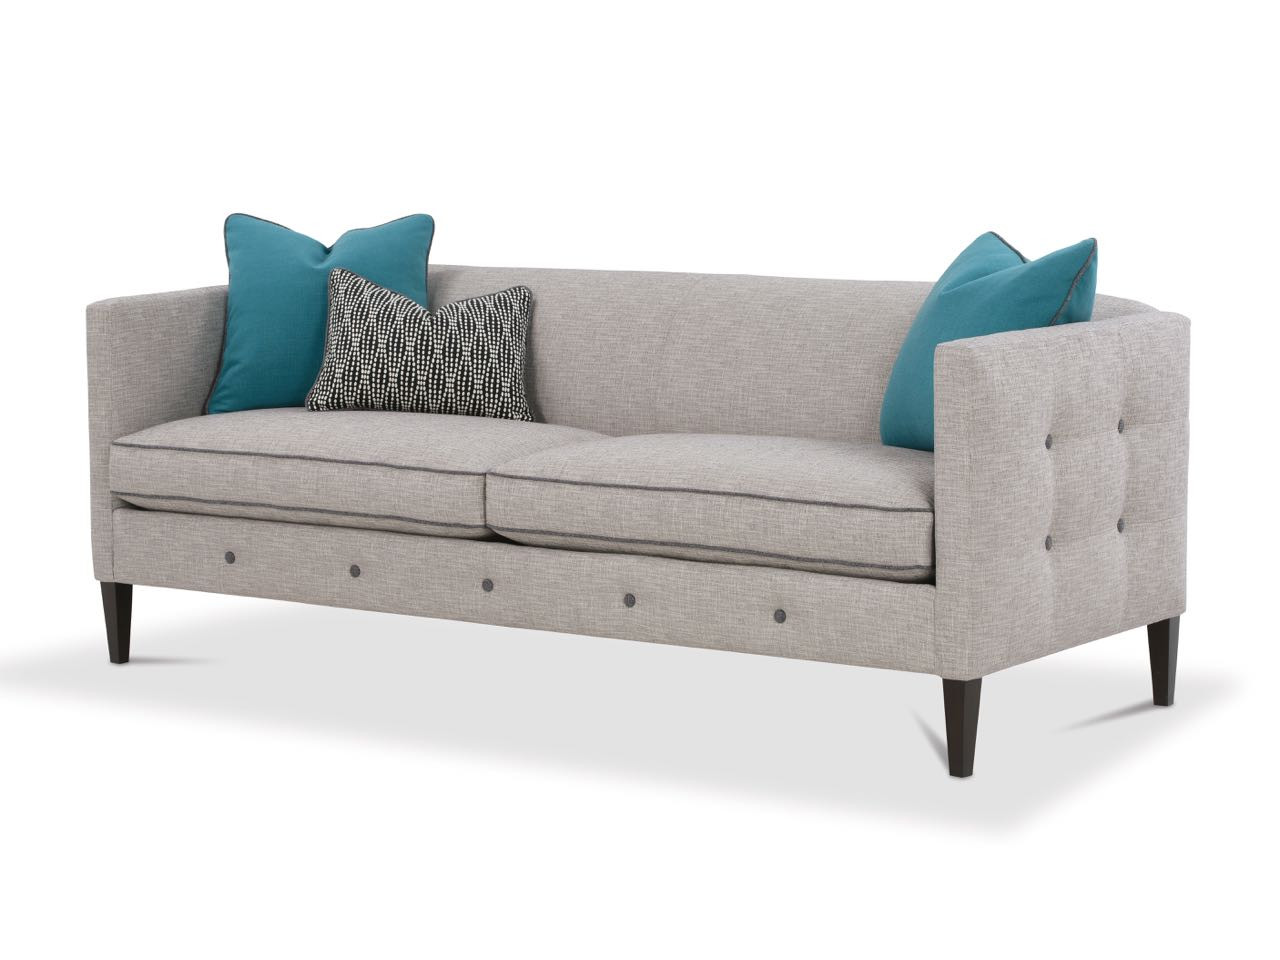 Escott Sofa Upholstered Sofas Couches Country Willow